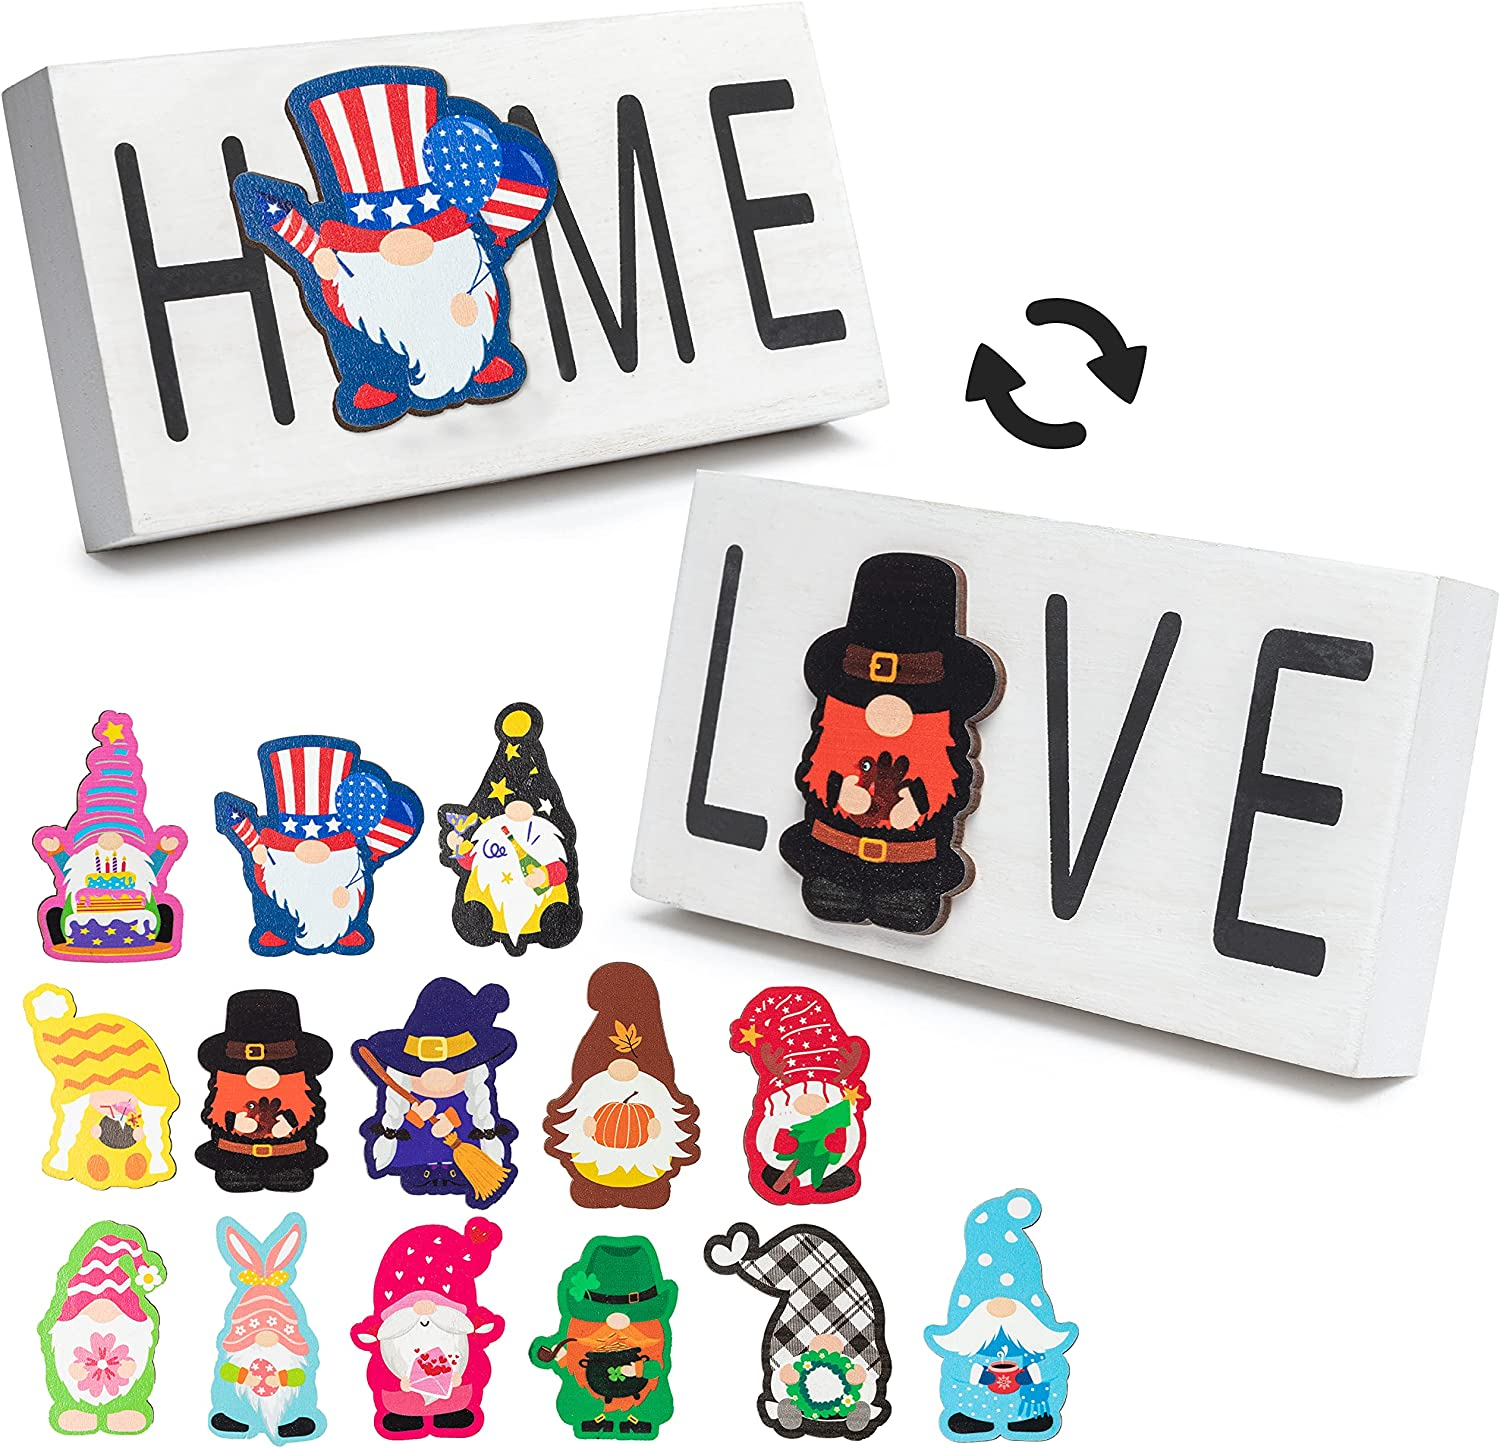 MALLMALL6 15Pcs Gnome Home Love Sign Interchangeable White Double Side Wooden Printed Elf Signs Magnetic Seasonal Crafts Kits for Independence Day Halloween Home Decors Holiday Family Ornaments